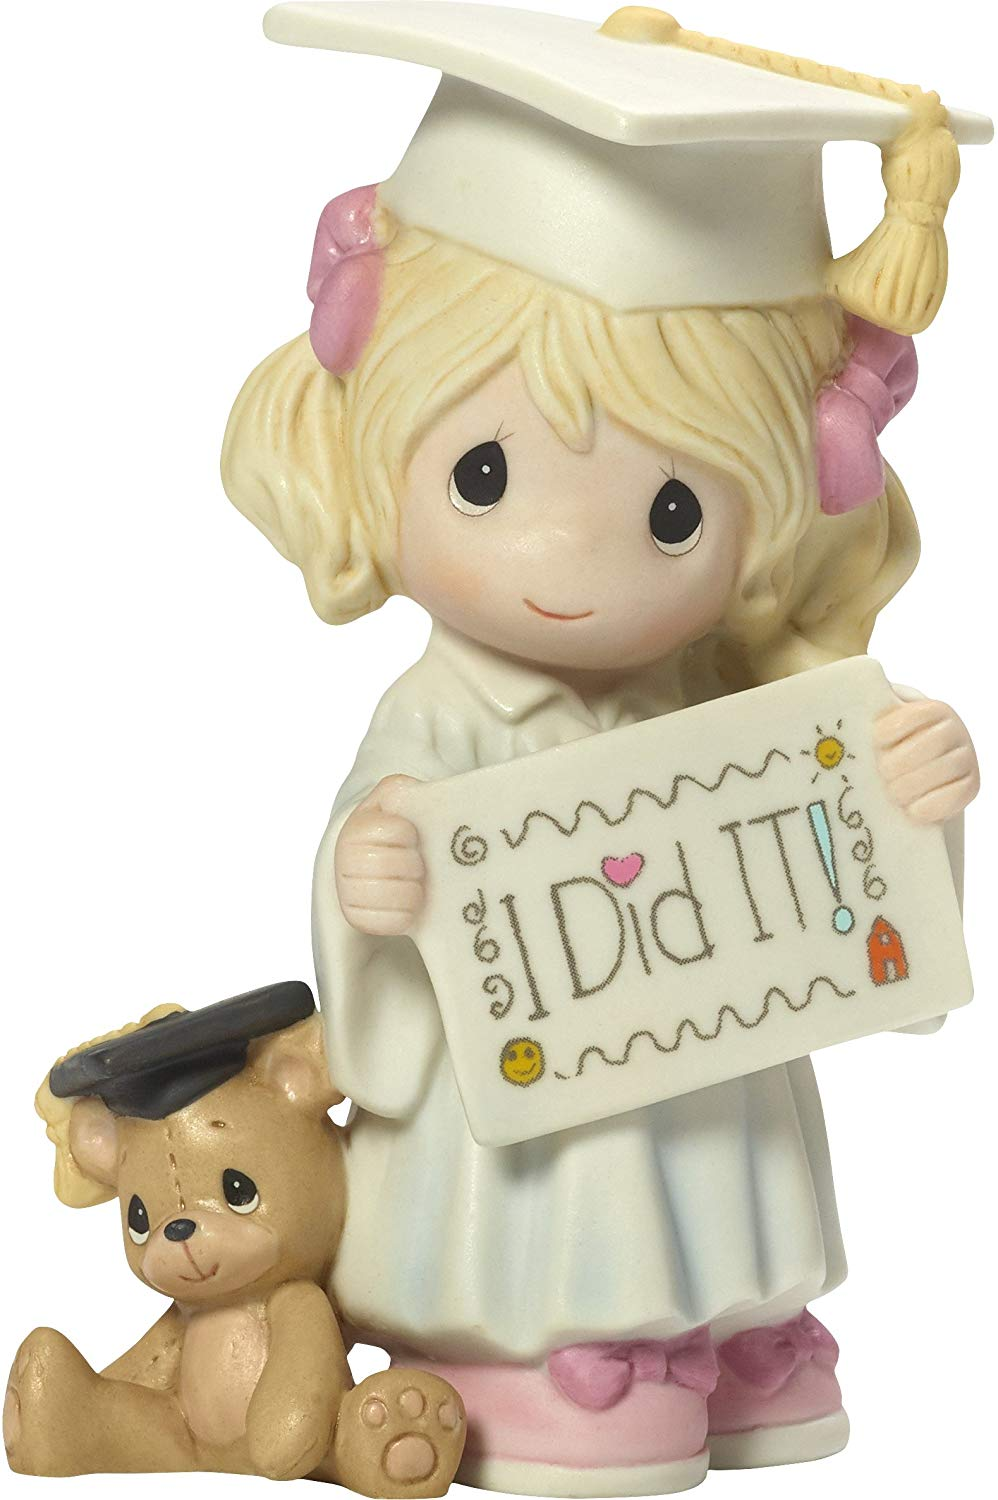 Precious Moments I Did It Graduation Girl With Teddy Bear Bisque Porcelain  Home Decor Collectible Figurine 173014.